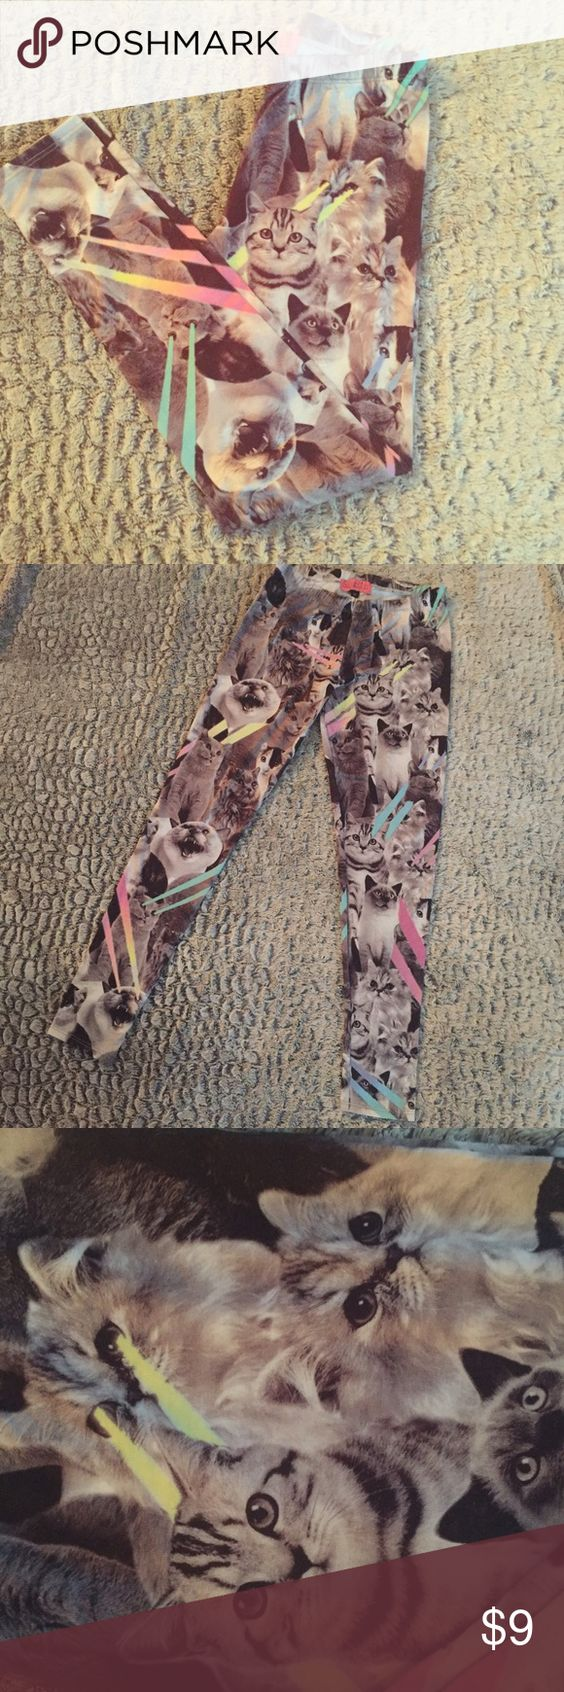 Kitty Leggings Novelty cat leggings featuring cute kittens with laser beams. Cotton leggings, elastic waistband. Size M (4-6) Pants Leggings